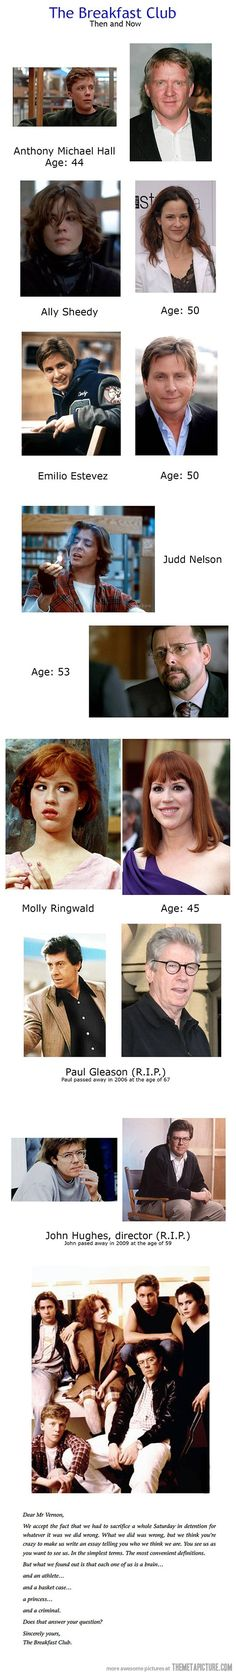 The Breakfast Club: then and now